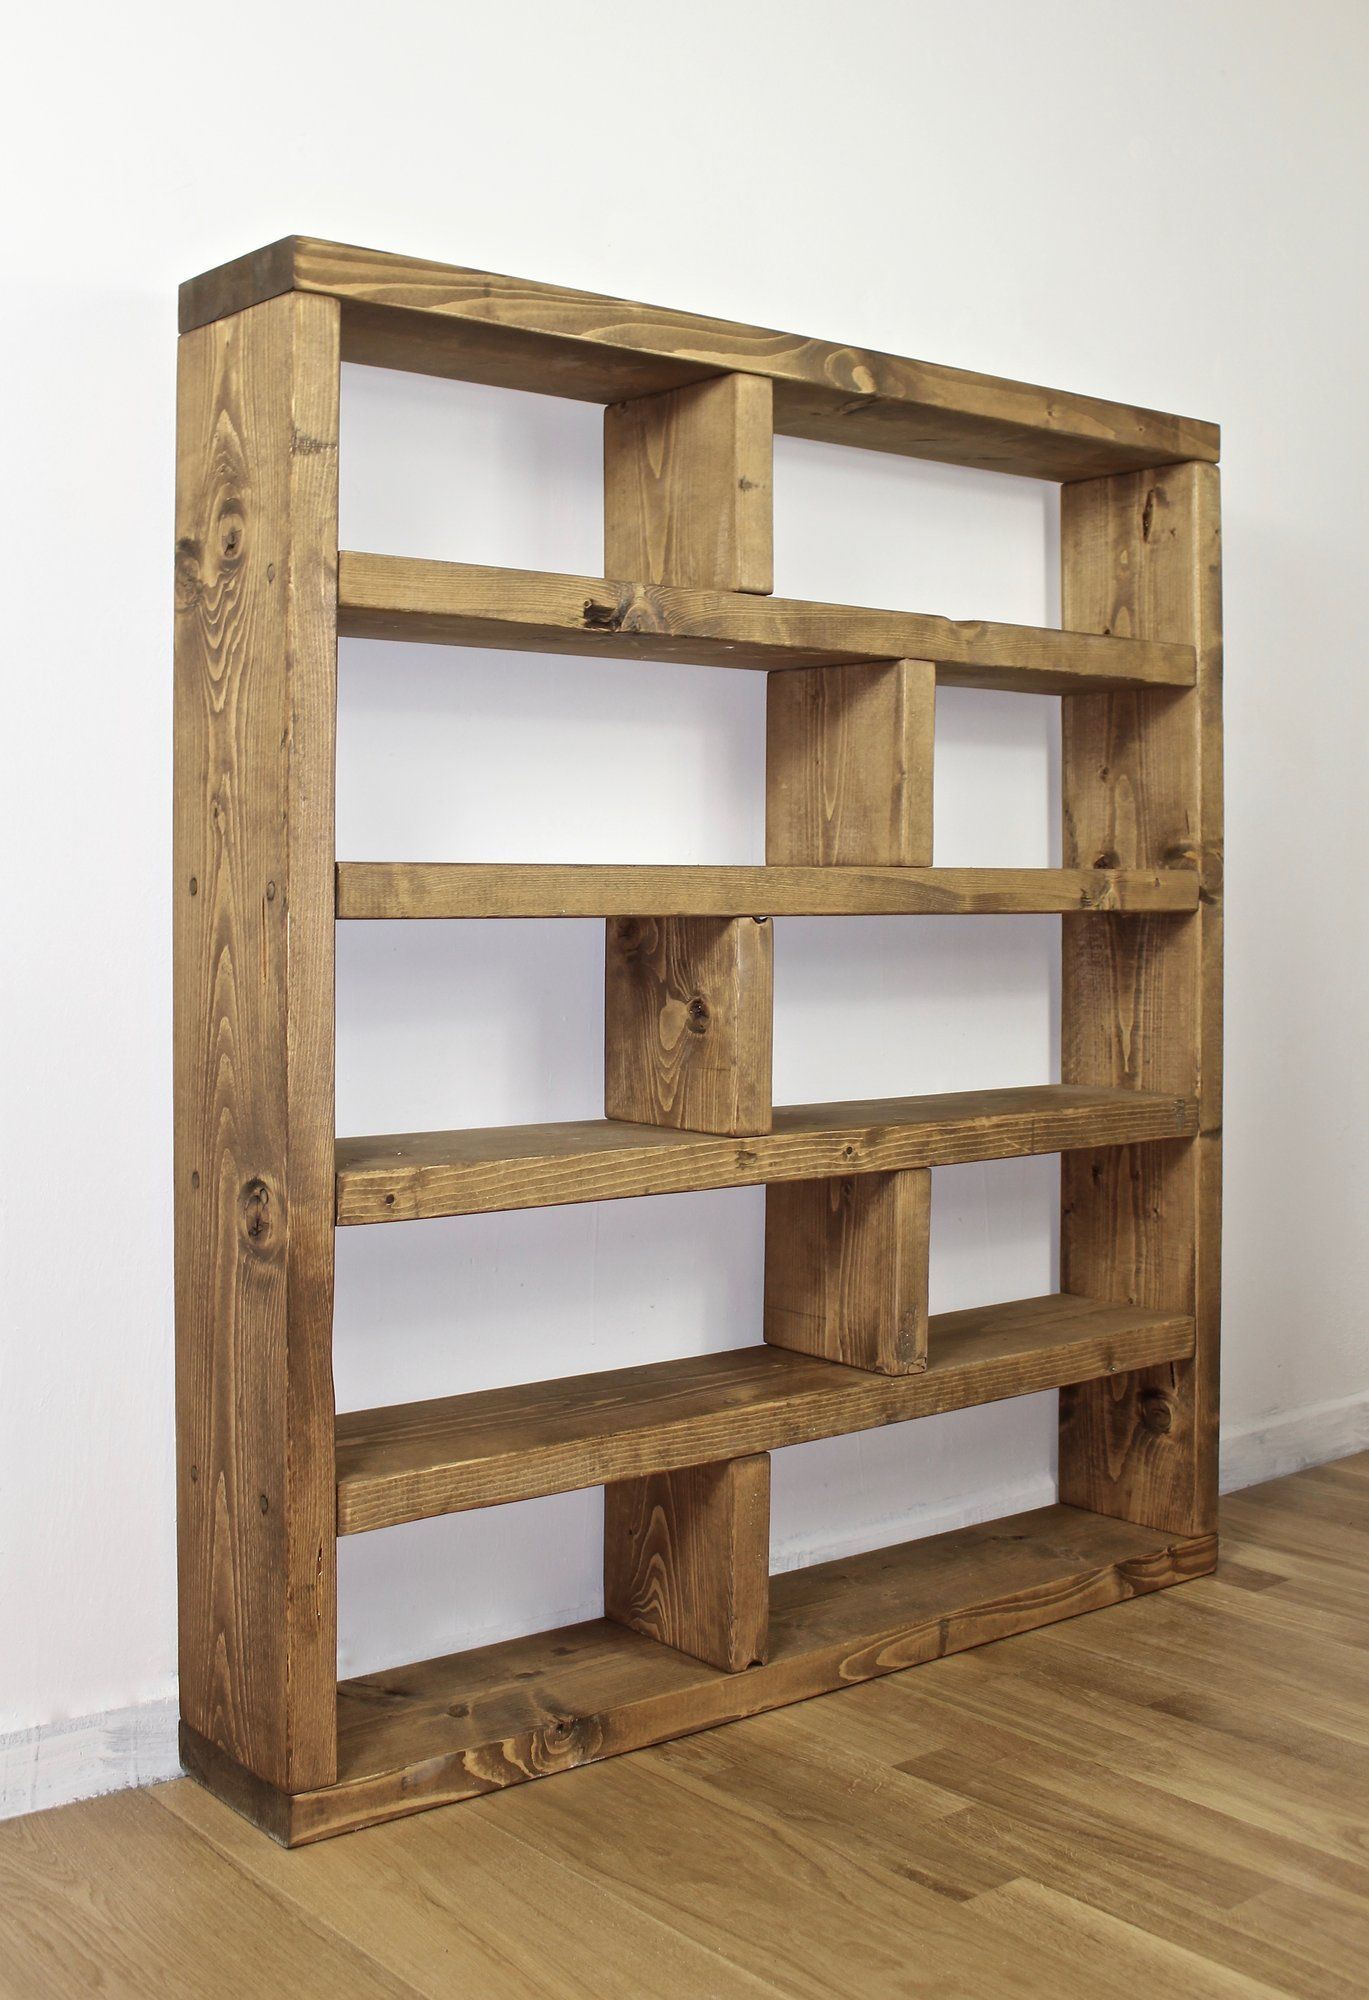 Union Rustic Ehrlich Bookcase In 2020 Rustic Shelves pertaining to sizing 1369 X 2000